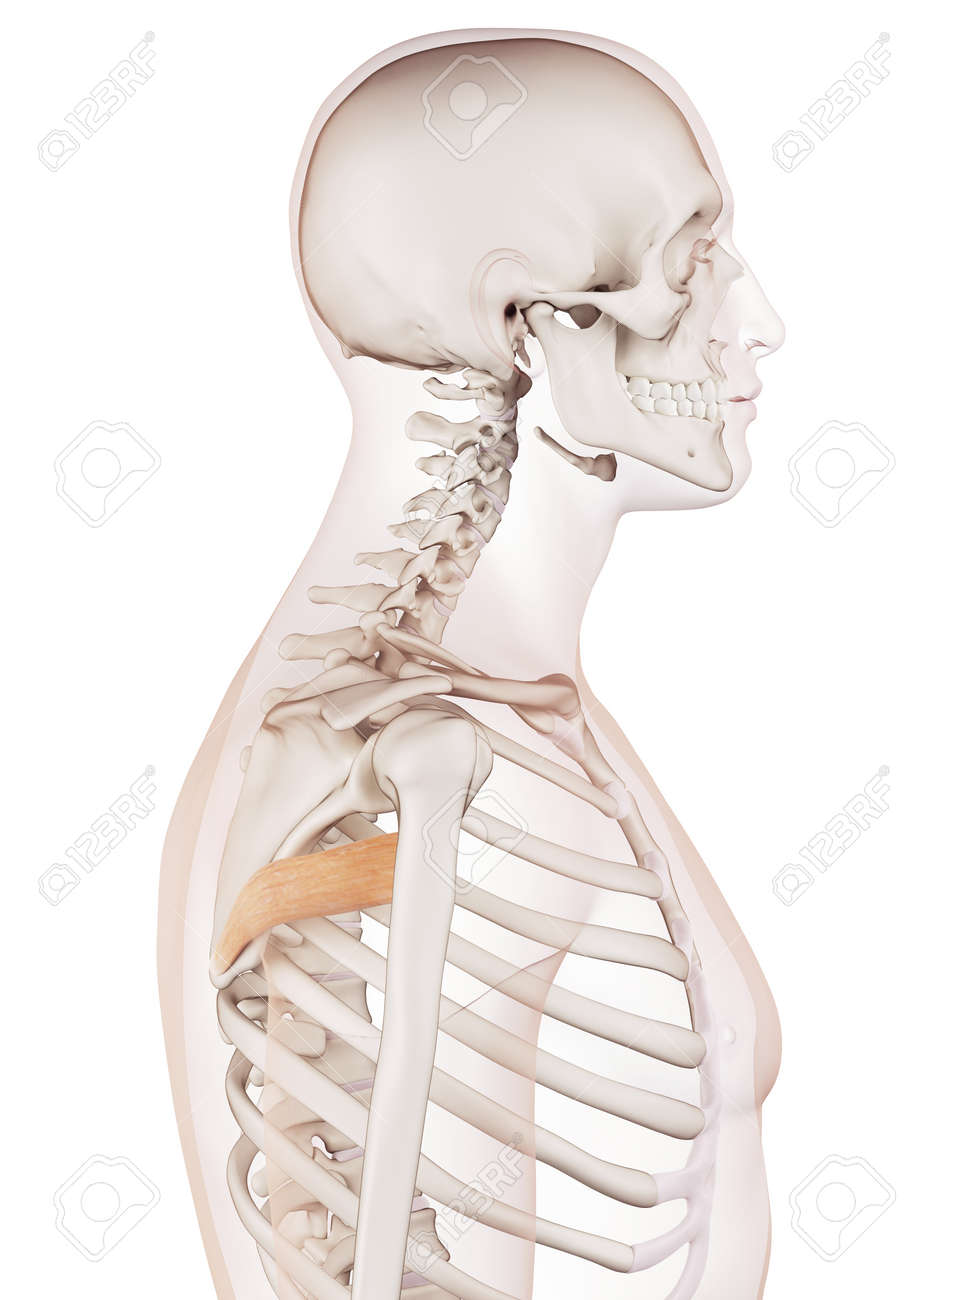 Medically Accurate Muscle Illustration Of The Teres Major Stock ...